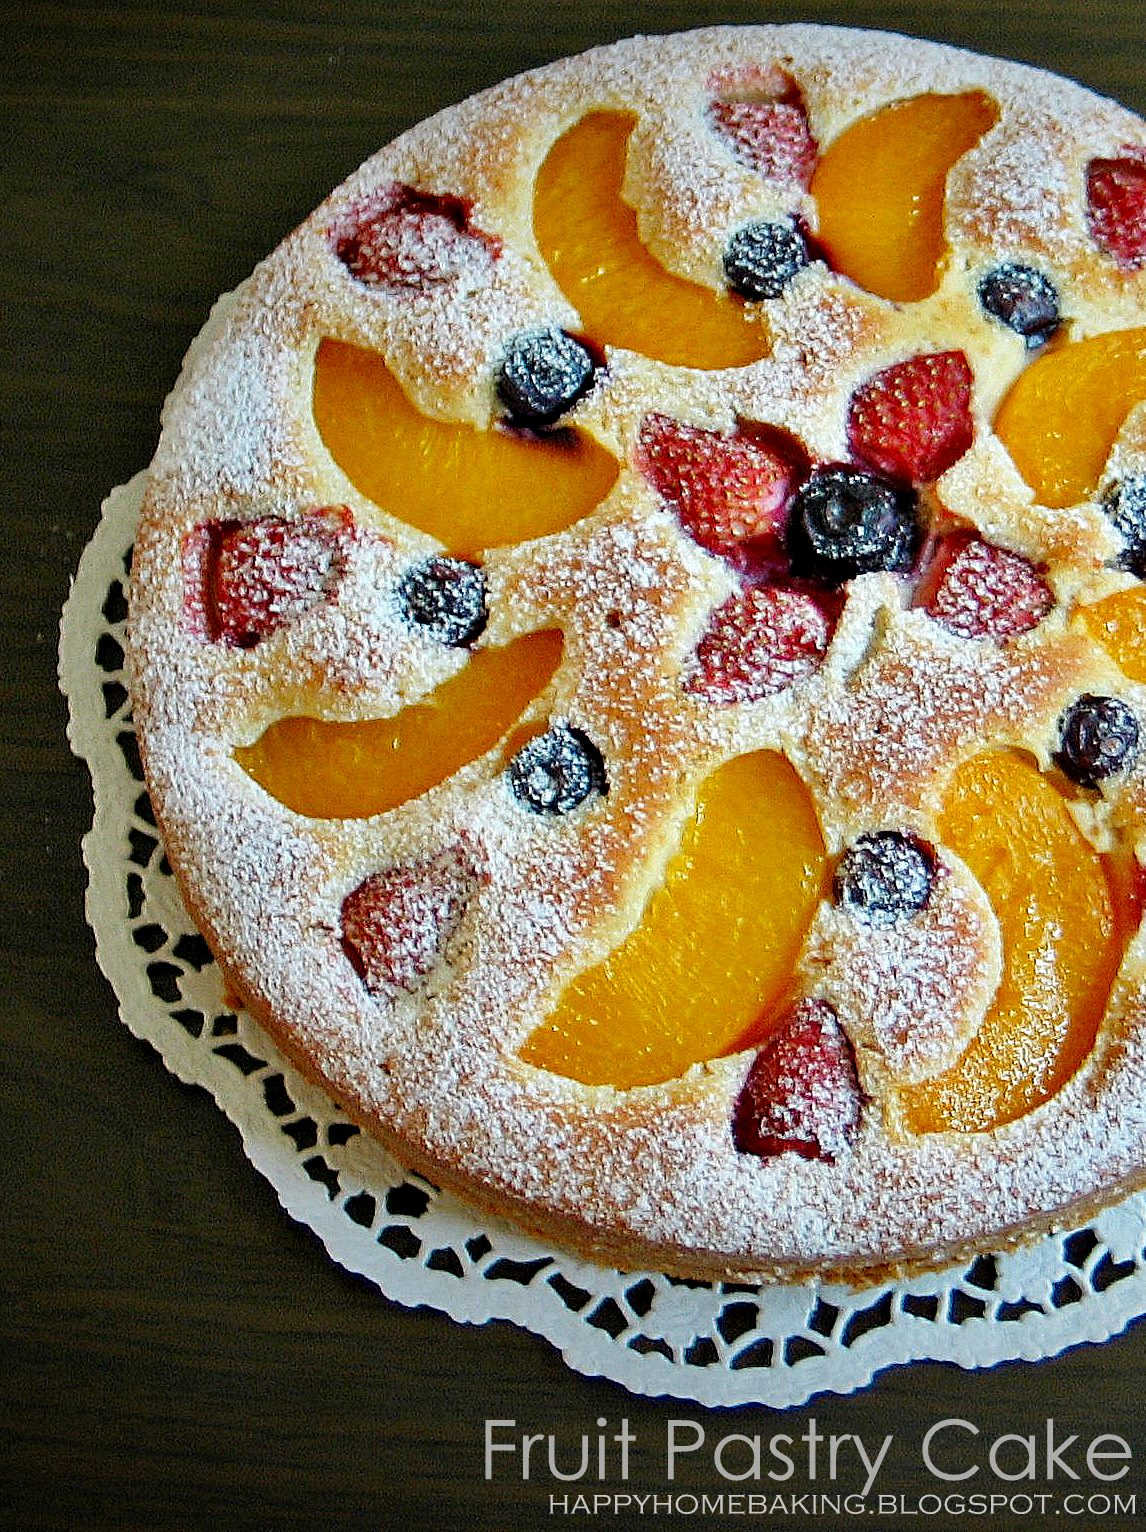 Happy Home Baking Fruit Pastry Cake